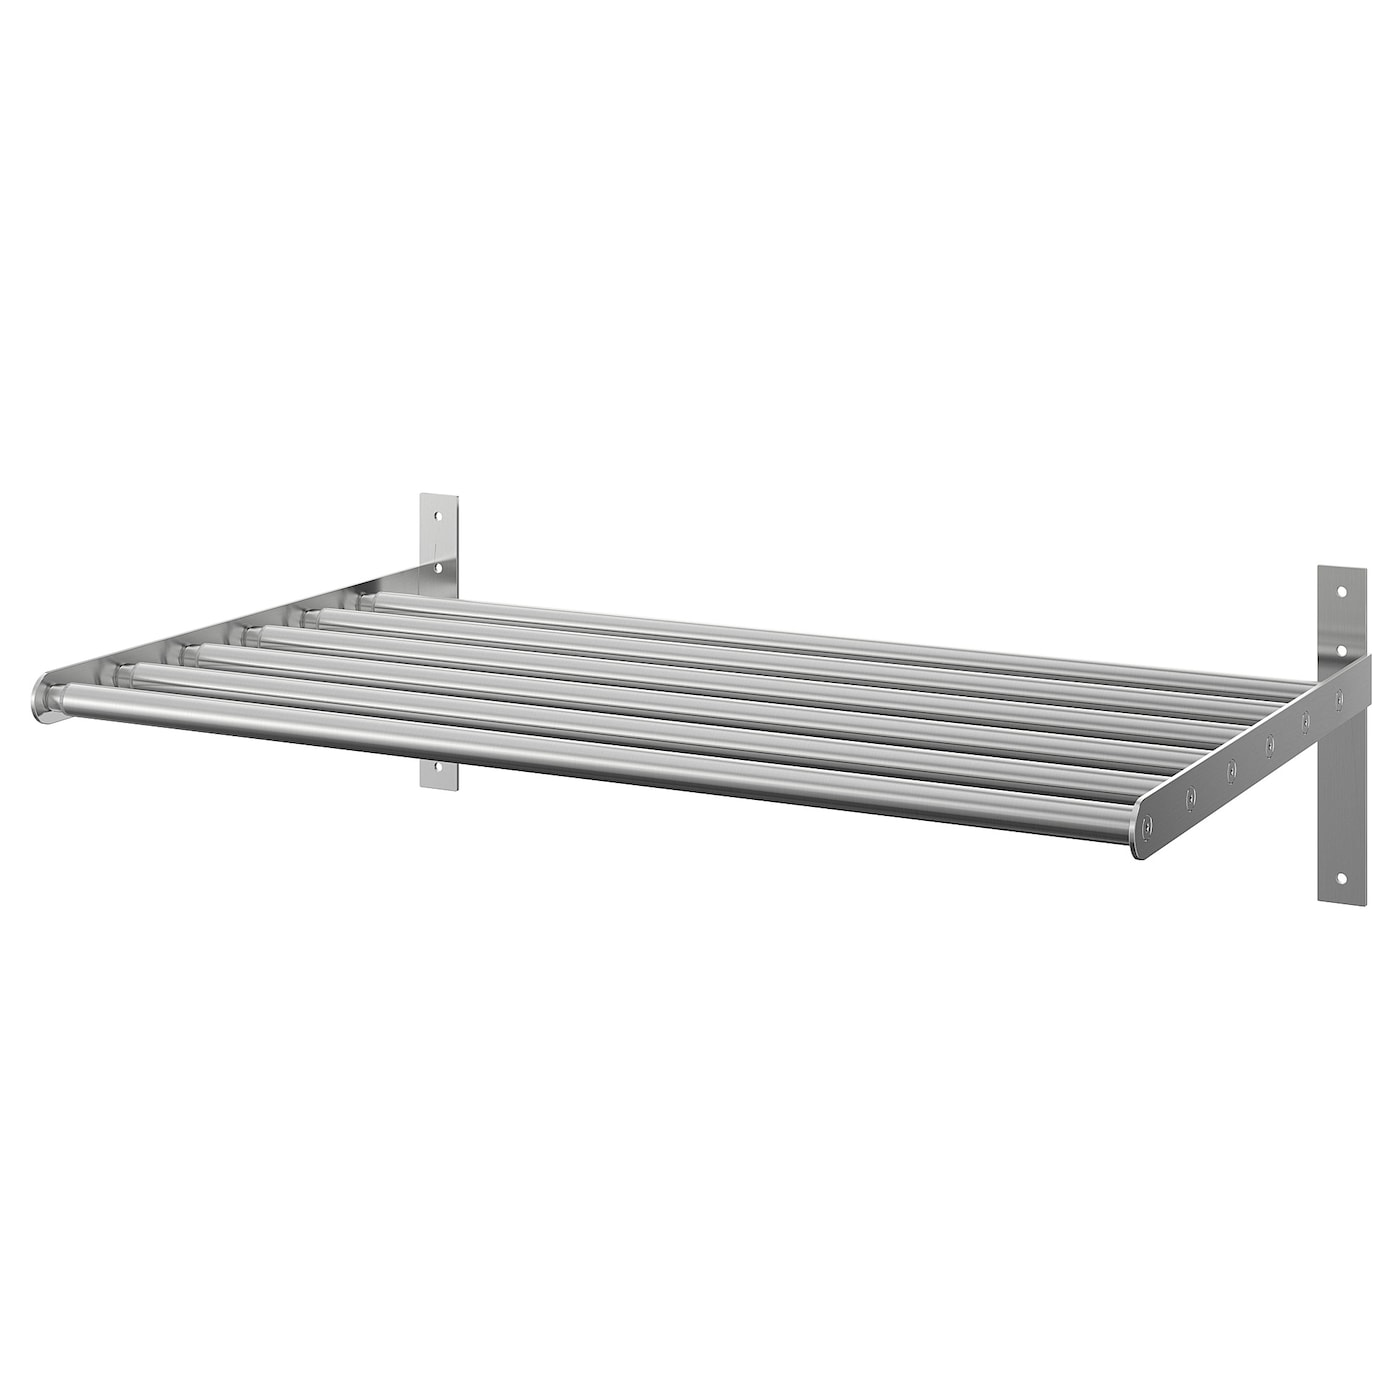 Ikea GRUNDTAL Dish Drainer Dryer Drying Rack Stainless Steel Discontinued NEW